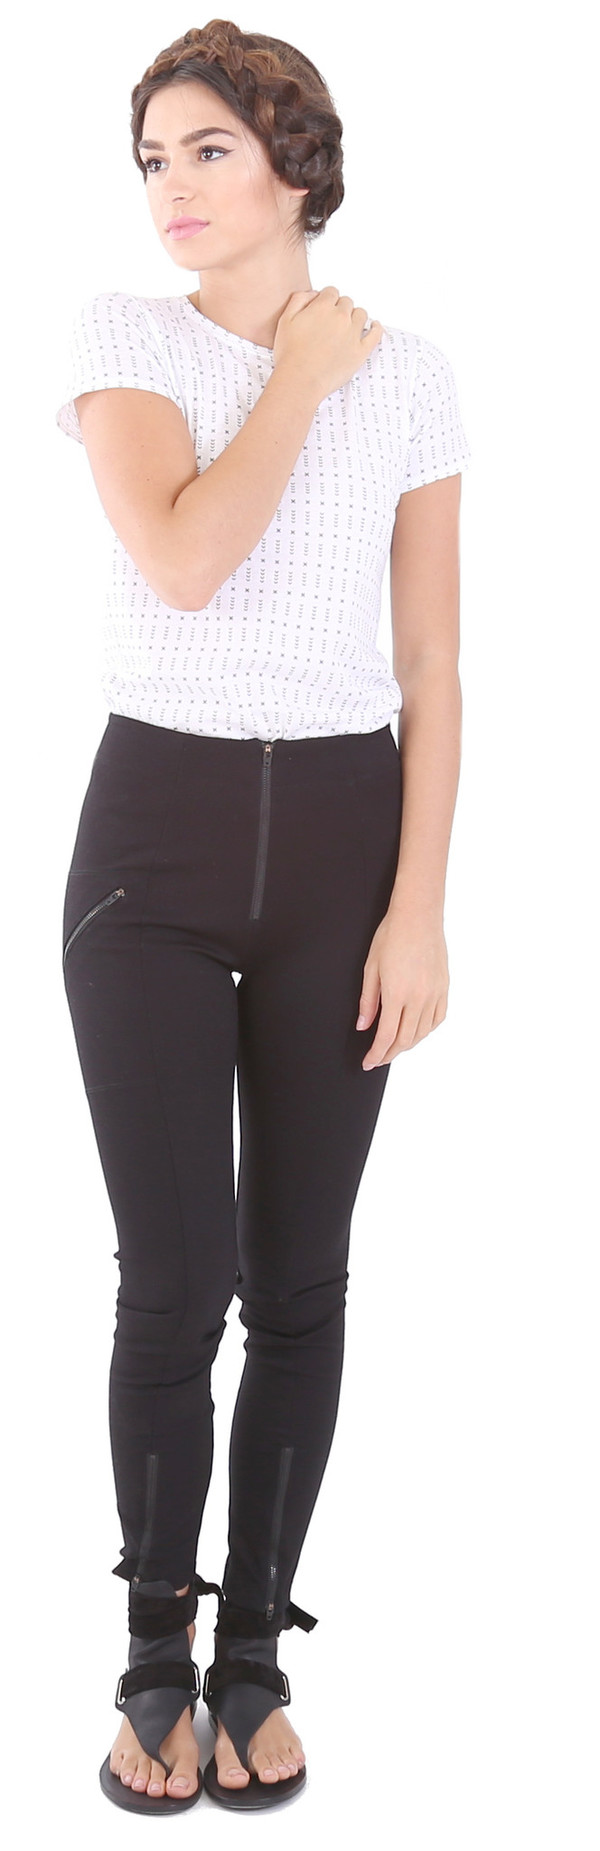 Prairie Underground 4-Way Zip Legging